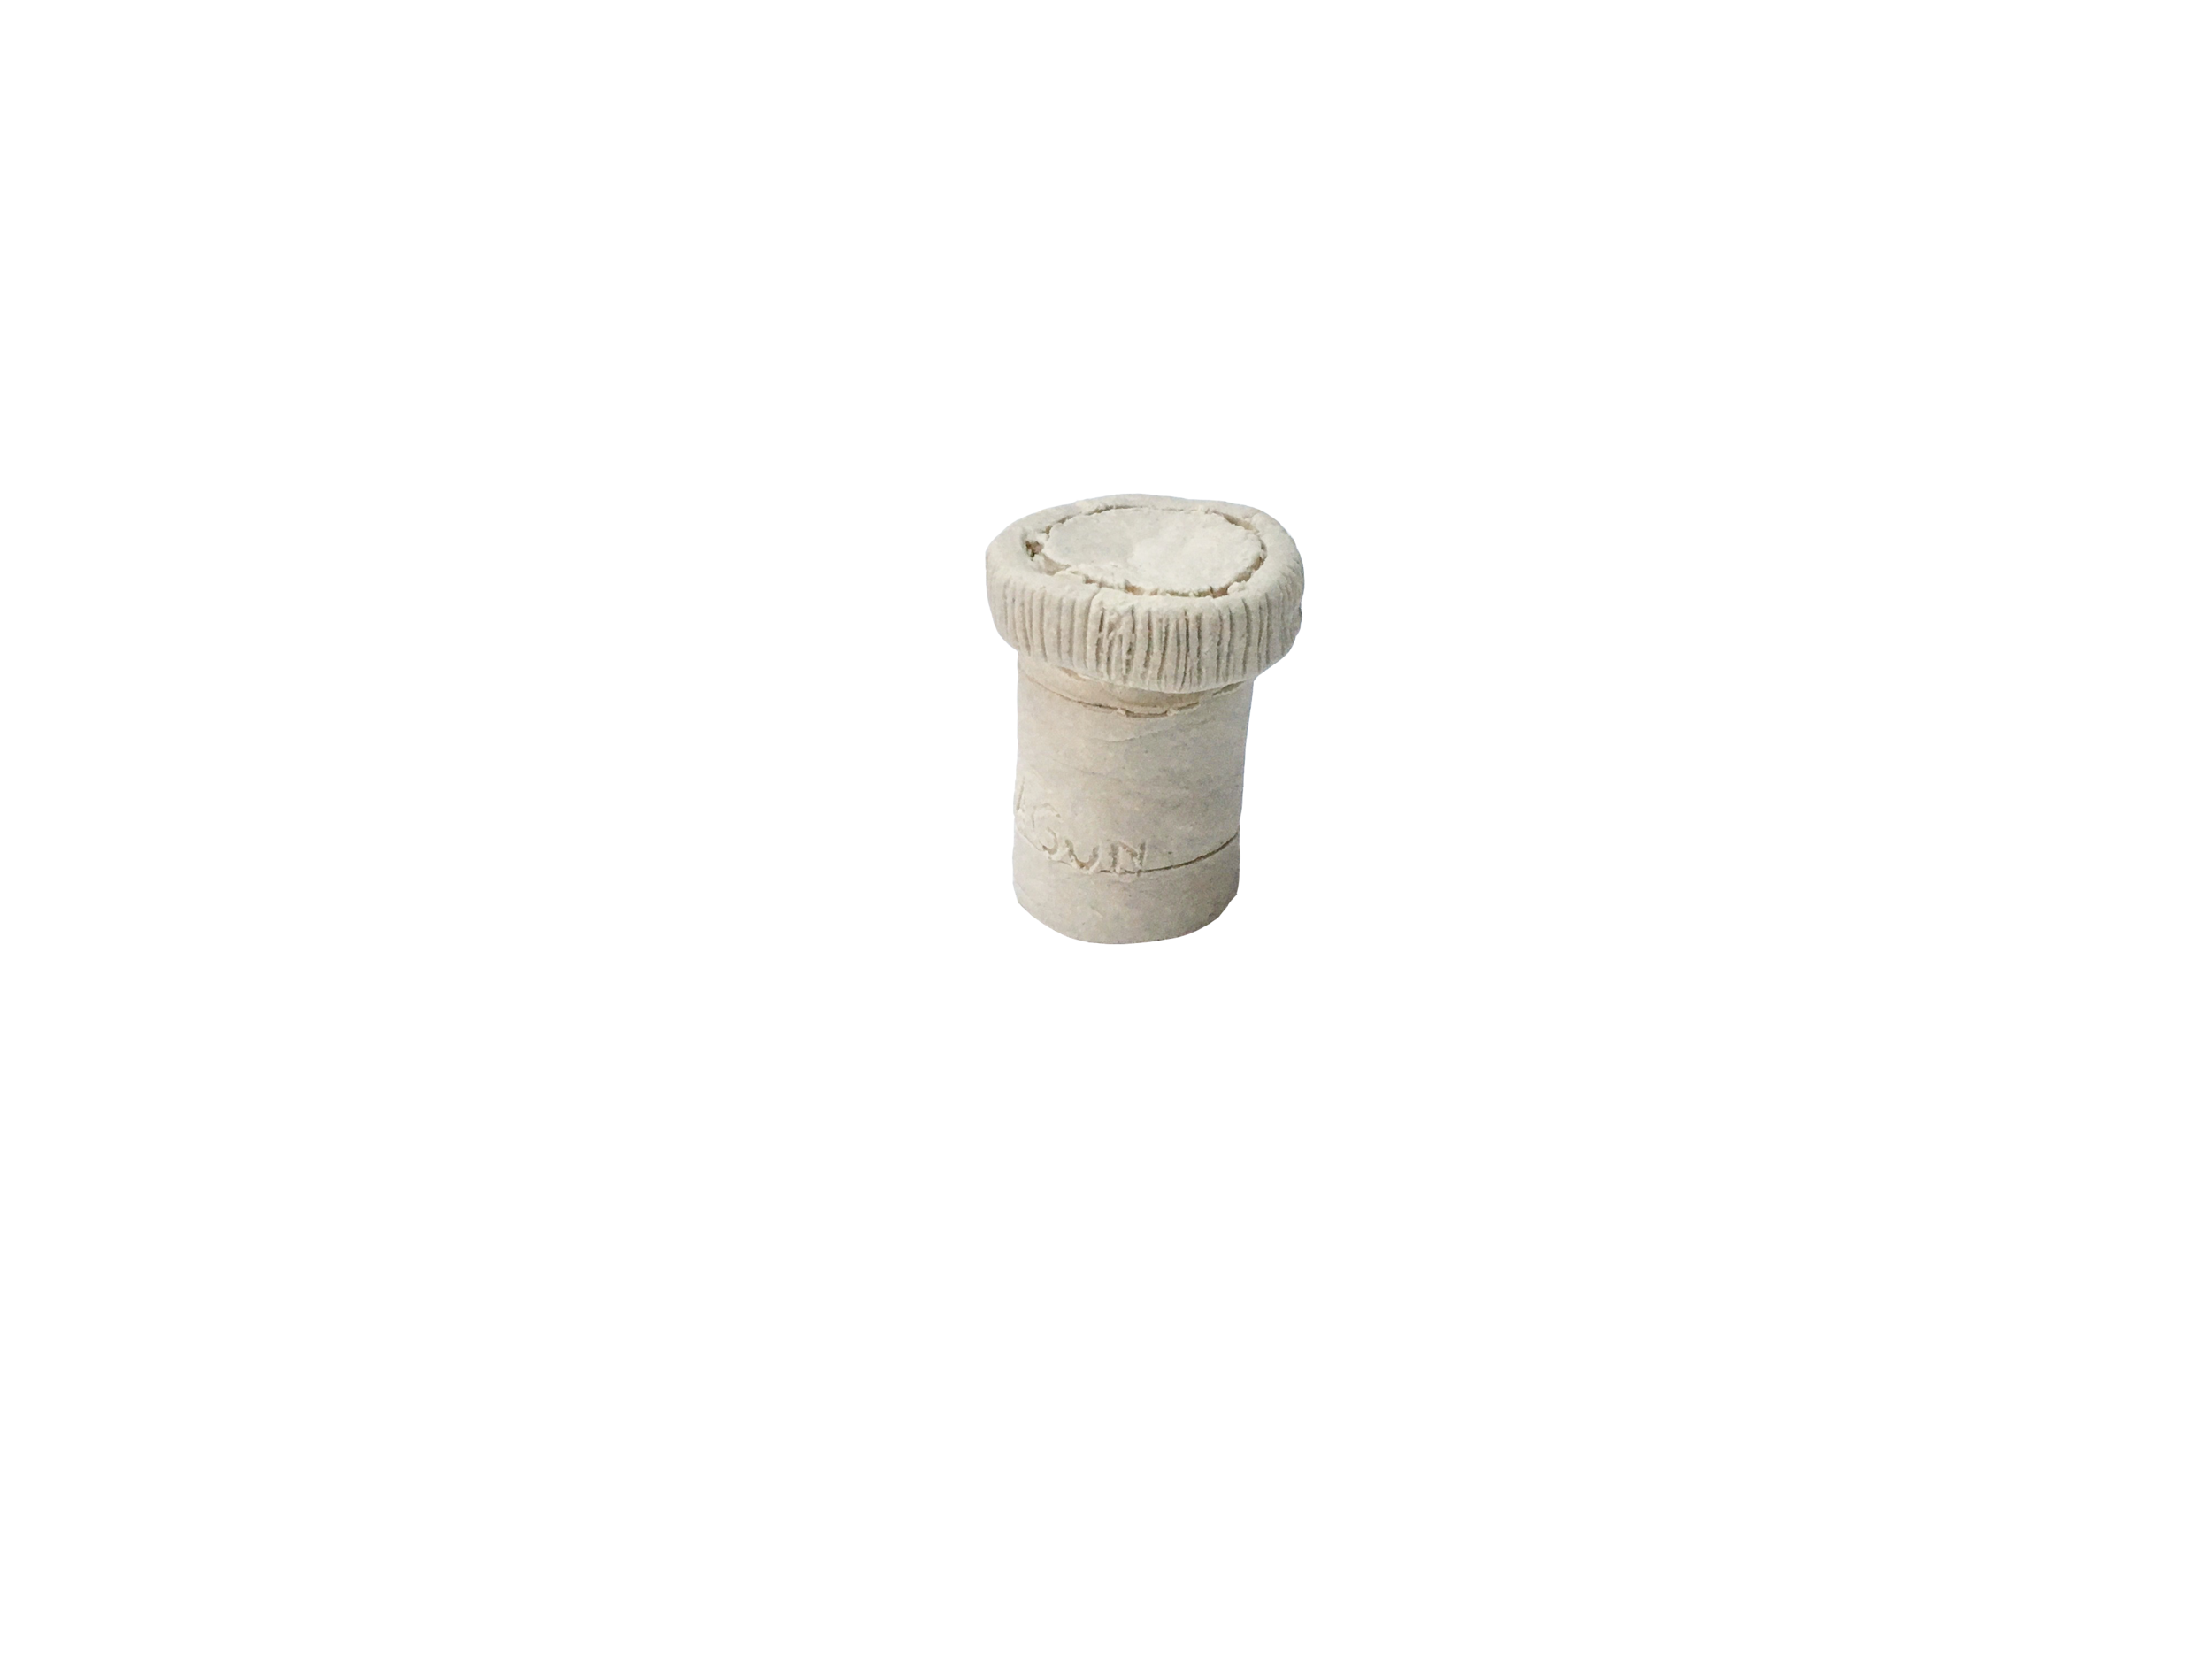 pill bottle_Marciano_12_12_18_nickerson.png